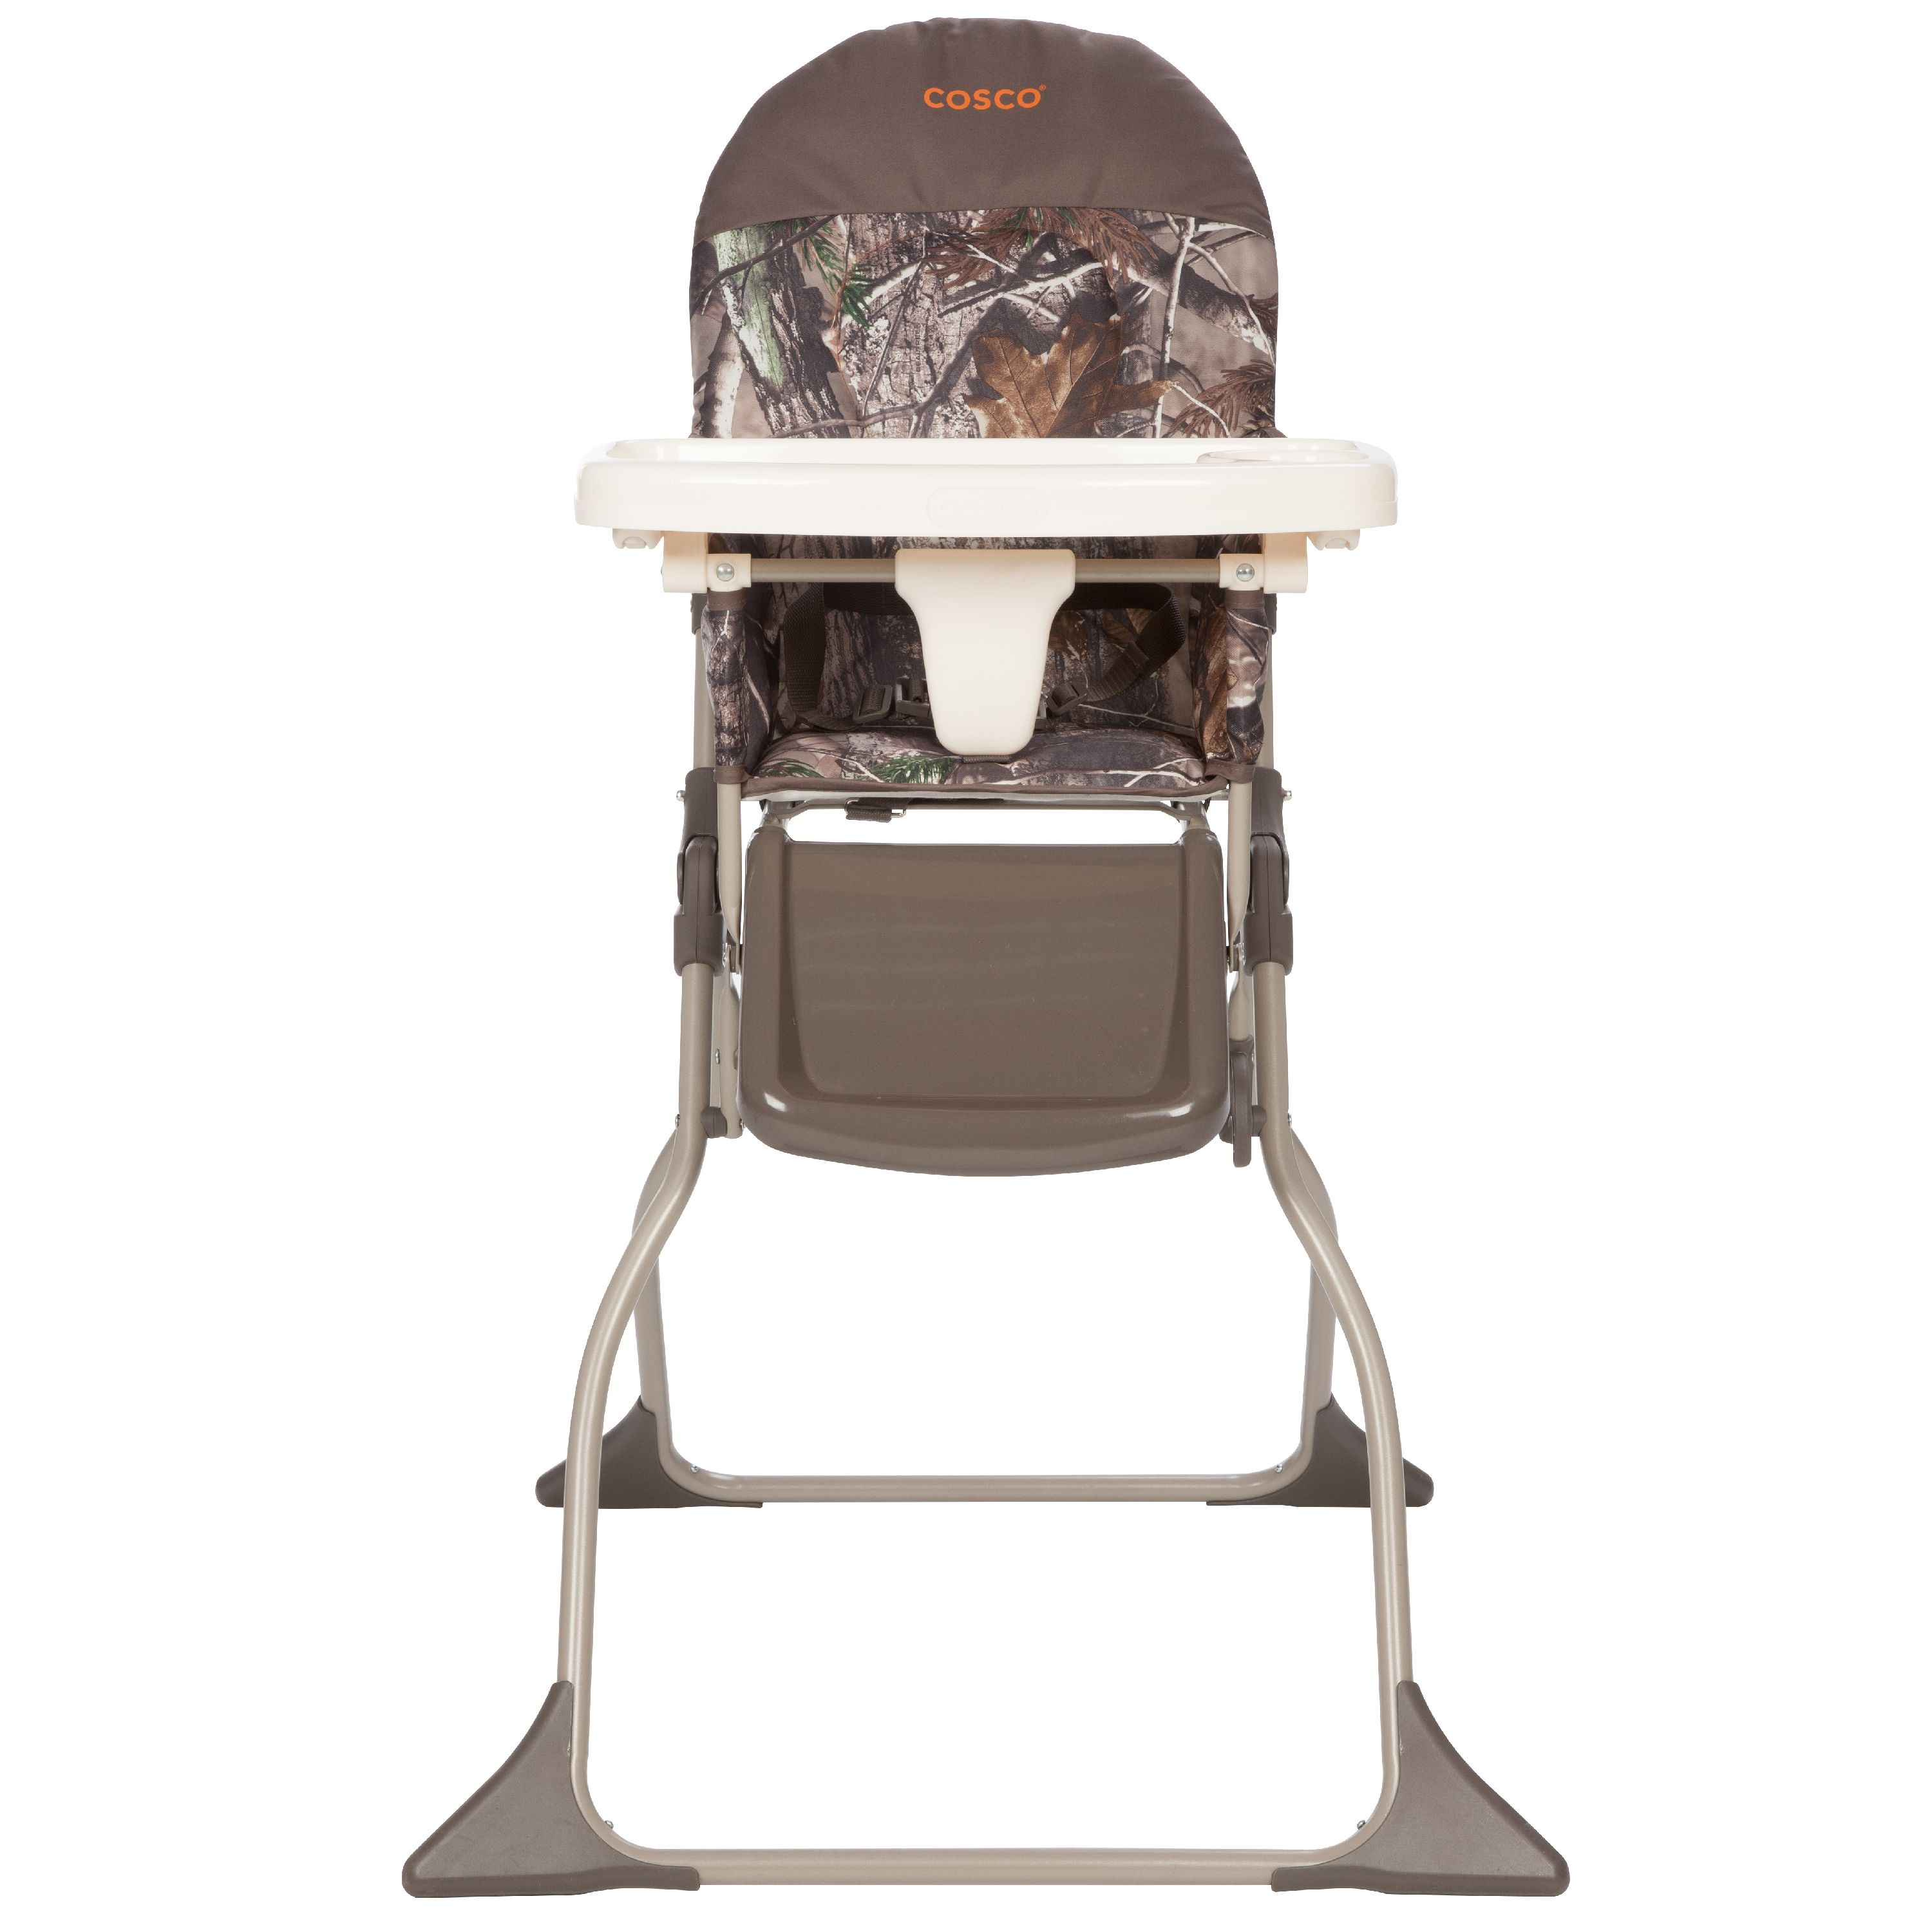 Cosco Simple Fold Full Size High Chair with Adjustable Tray, Realtree